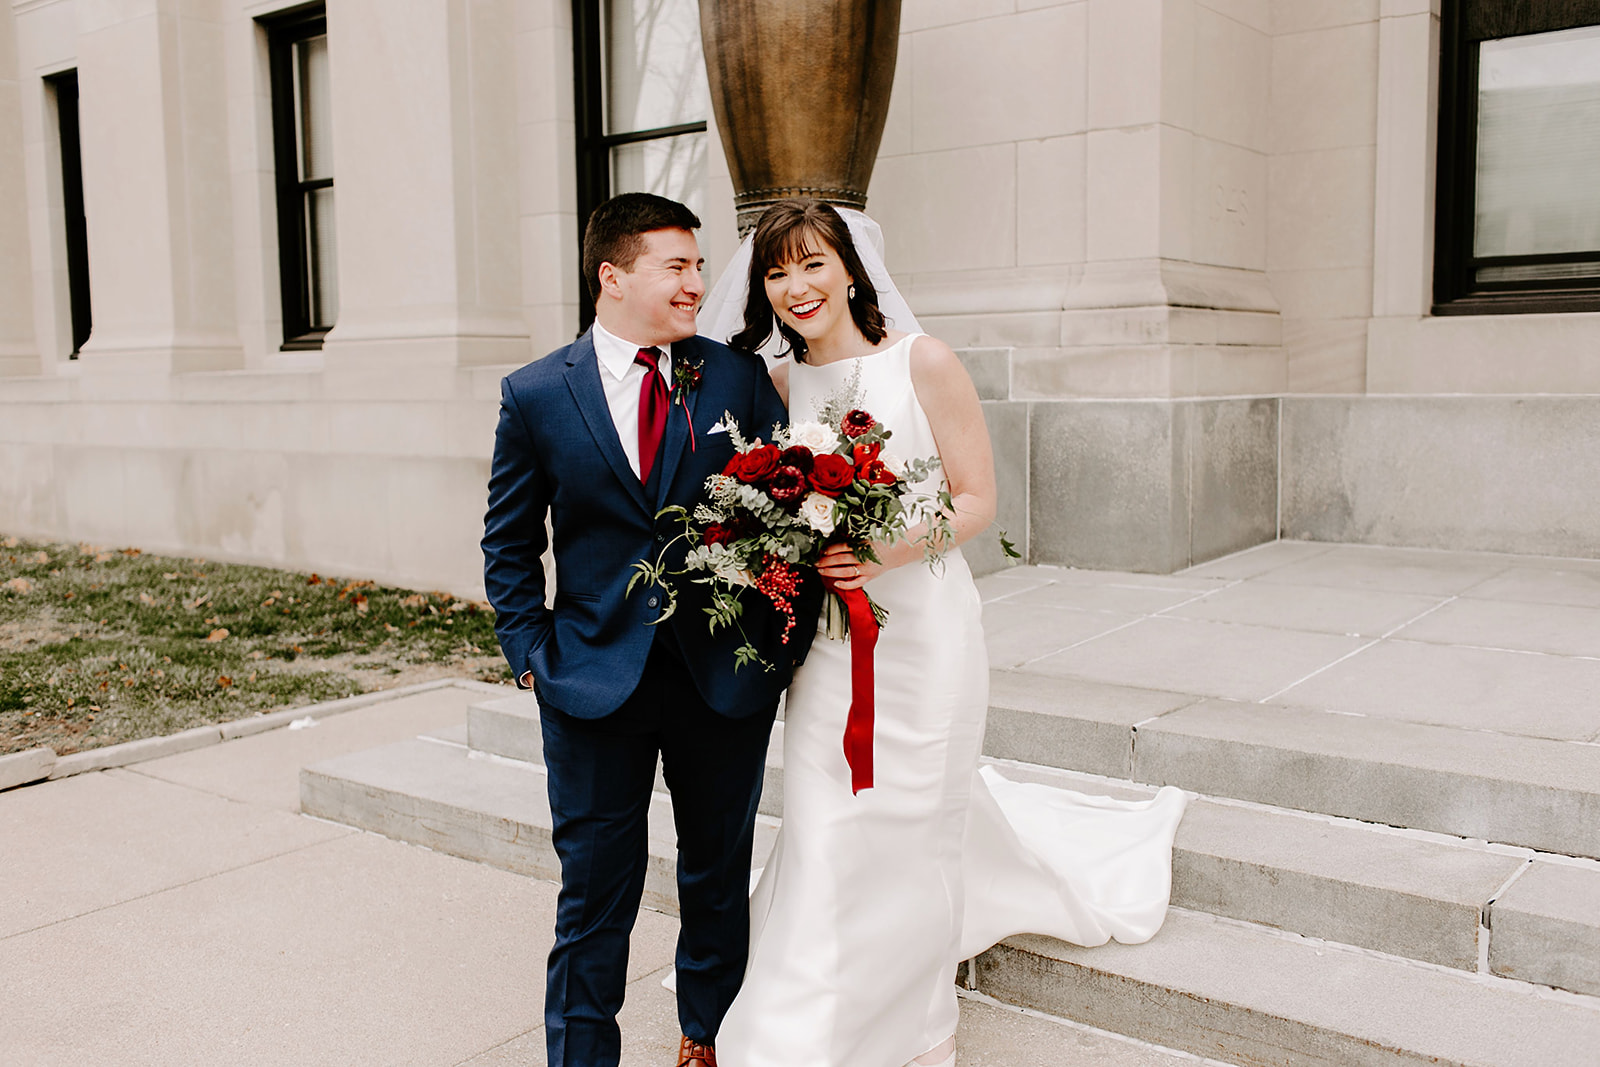 Emily and Davis_ Wedding at Vision Loft Indy in Indianapolis Indiana by Emily Elyse Wehner Photogrpahy LLC-378.jpg